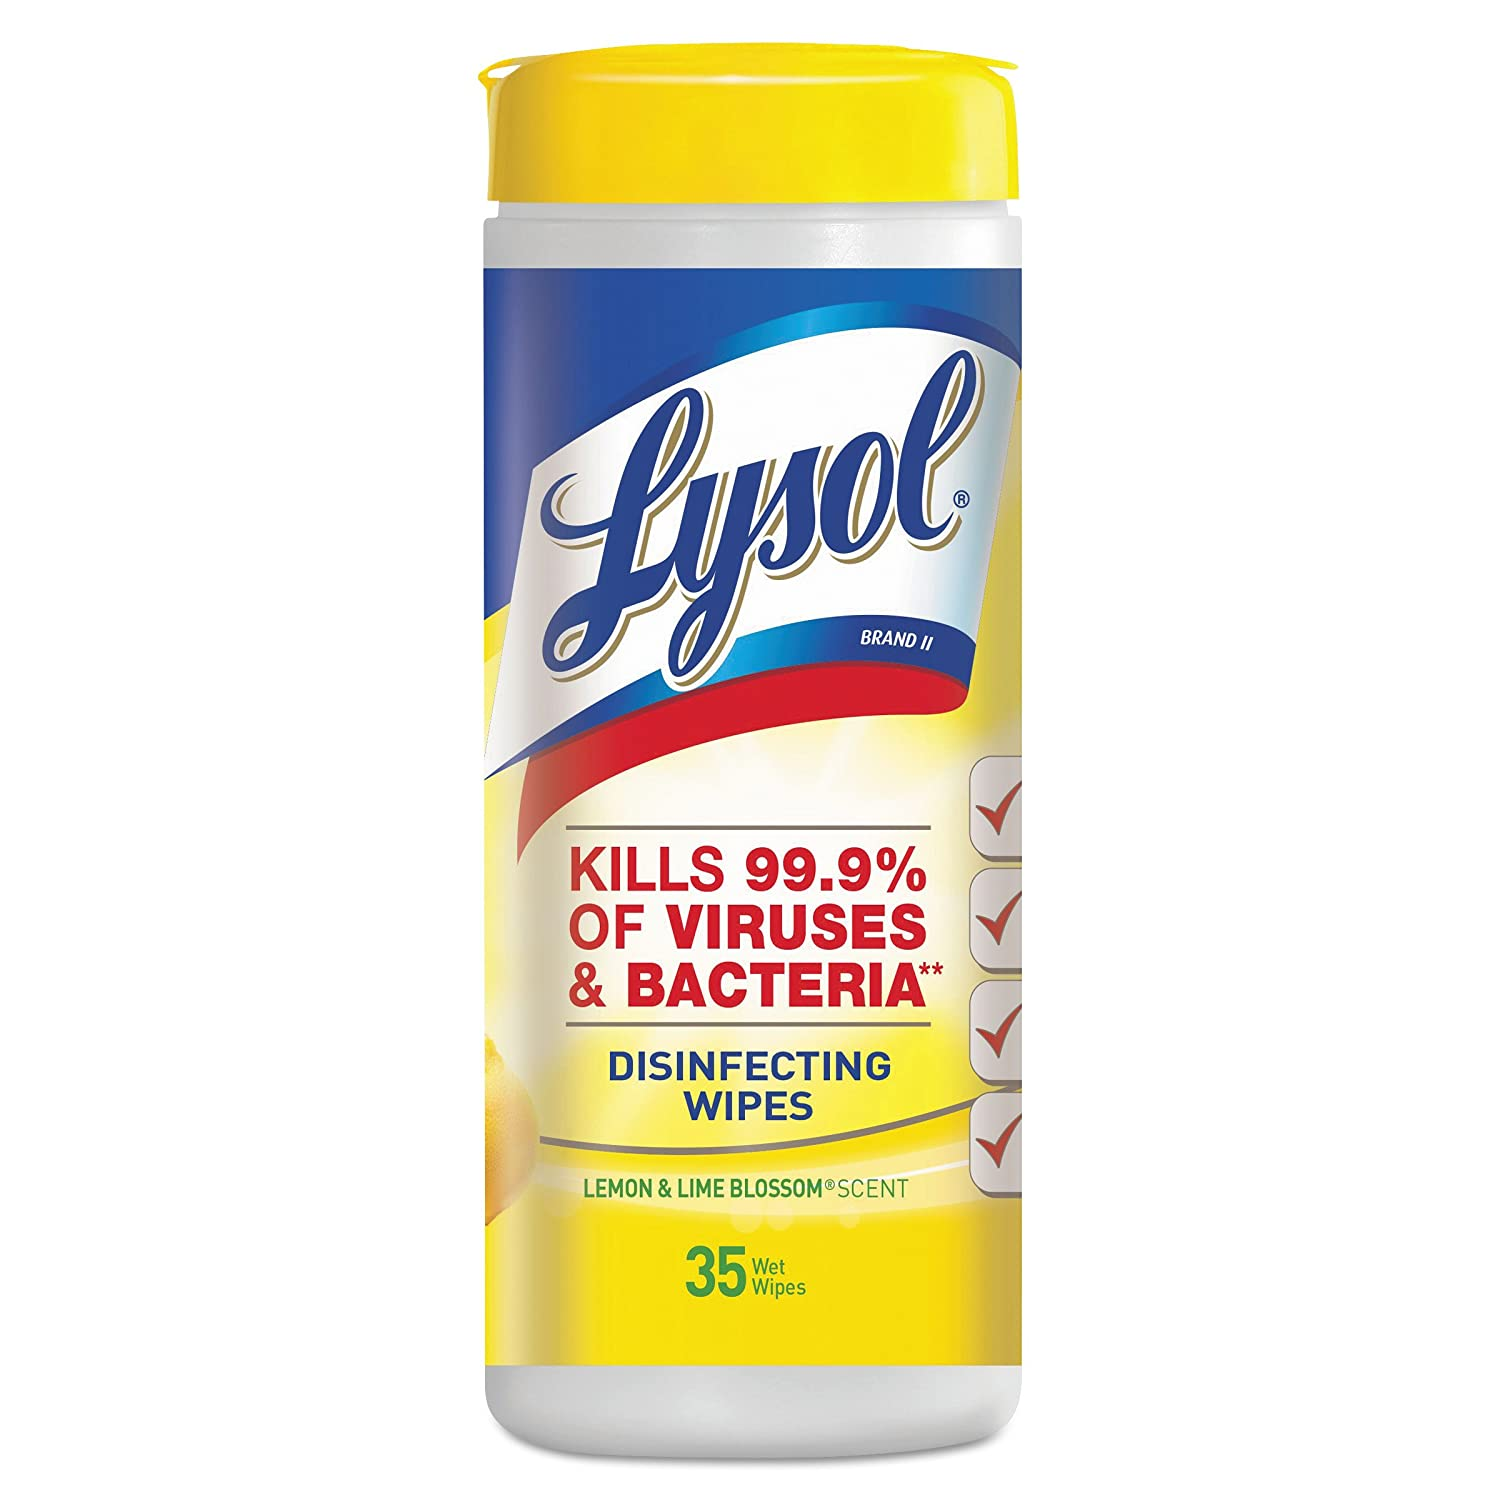 LYSOL Brand OFFicial store Recommended 19200-81145 Lemon and Blossom Wipe Lime Disinfecting